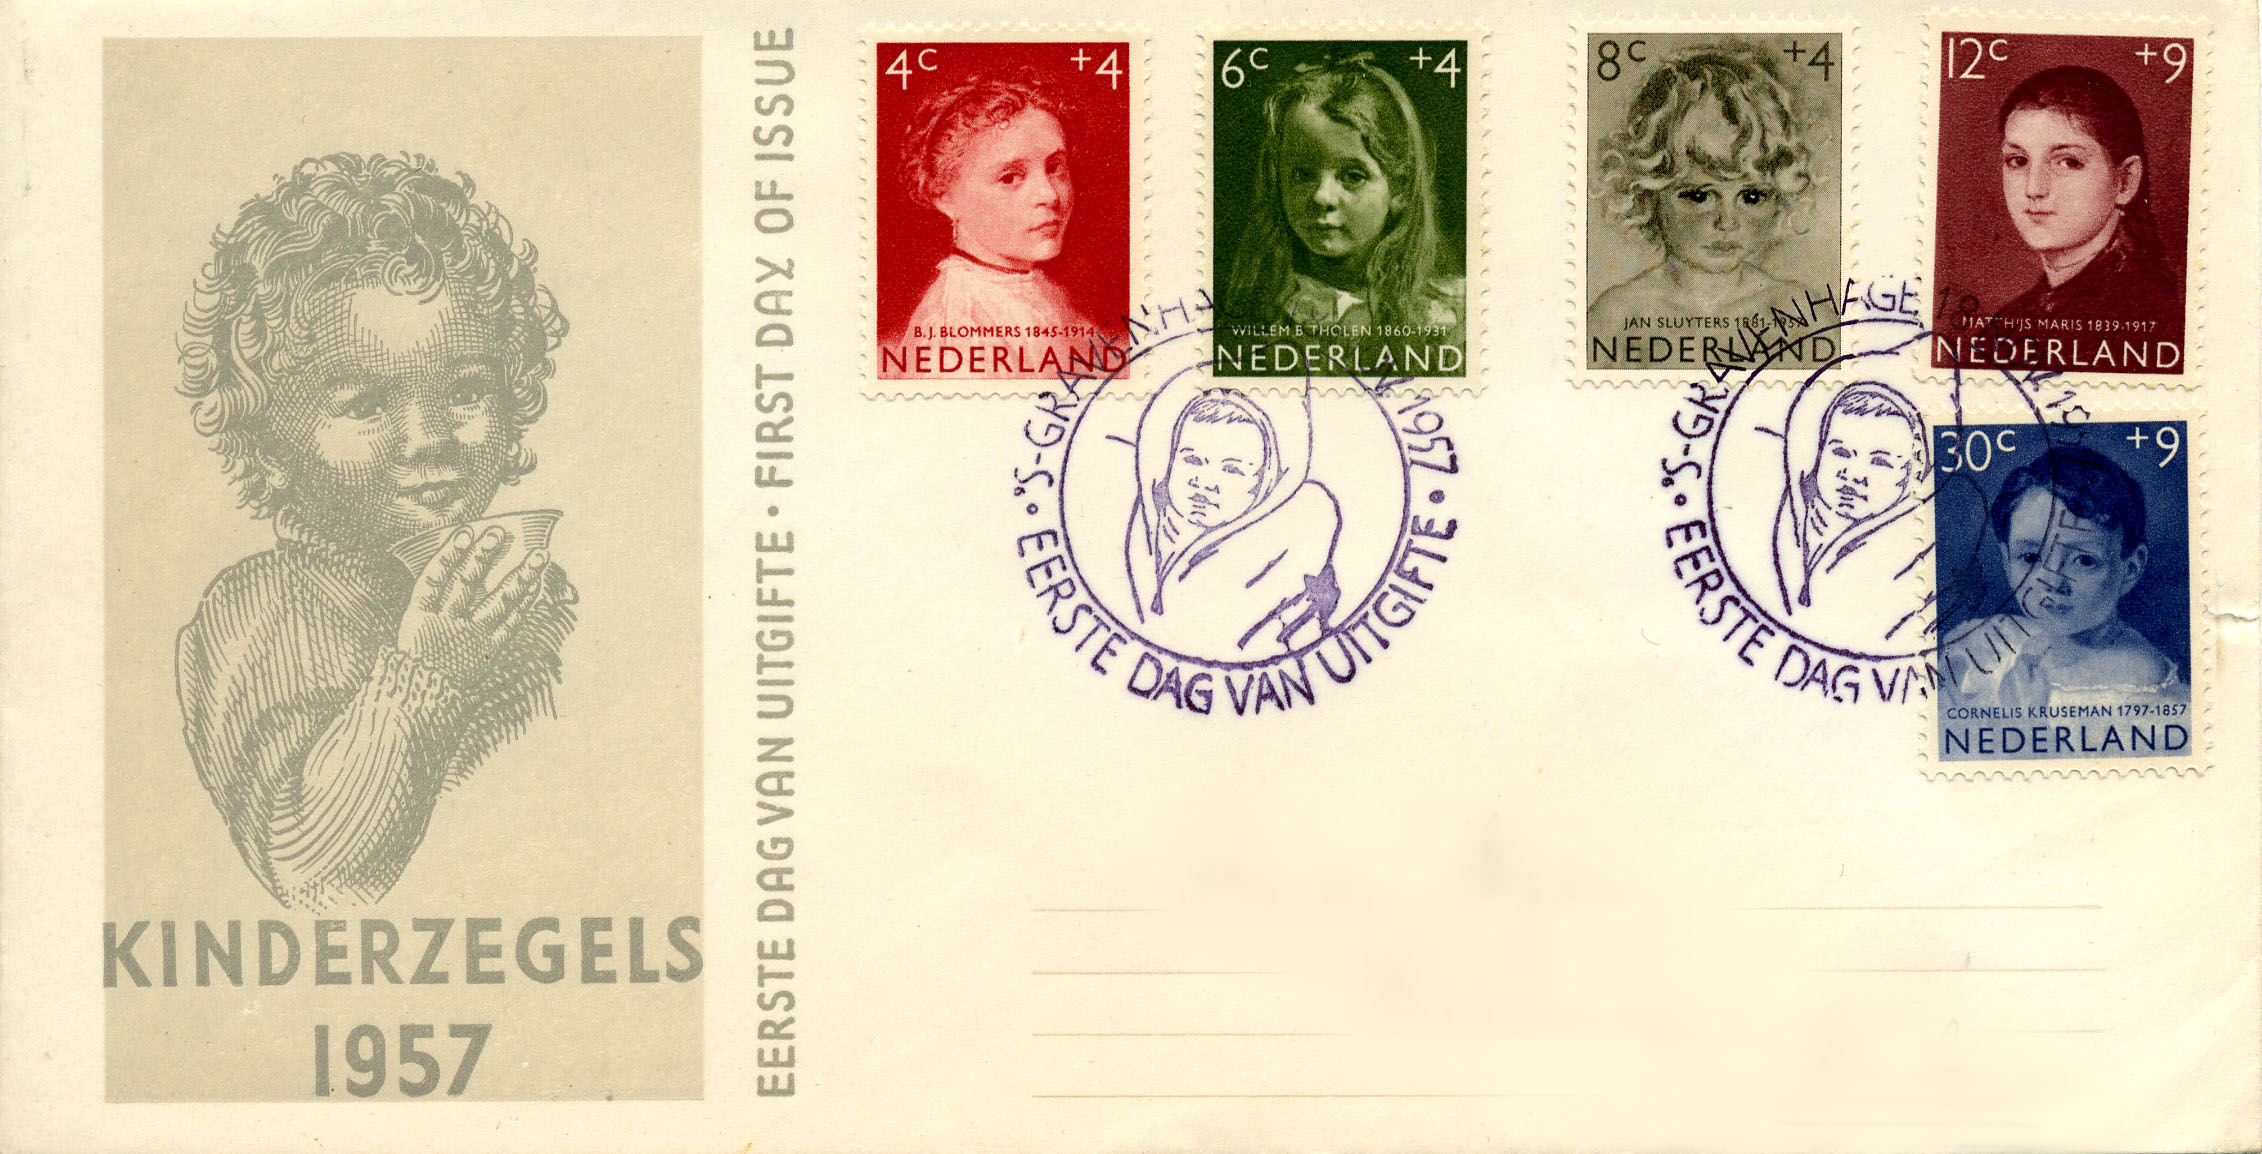 First day cover 1957 kinderzegels